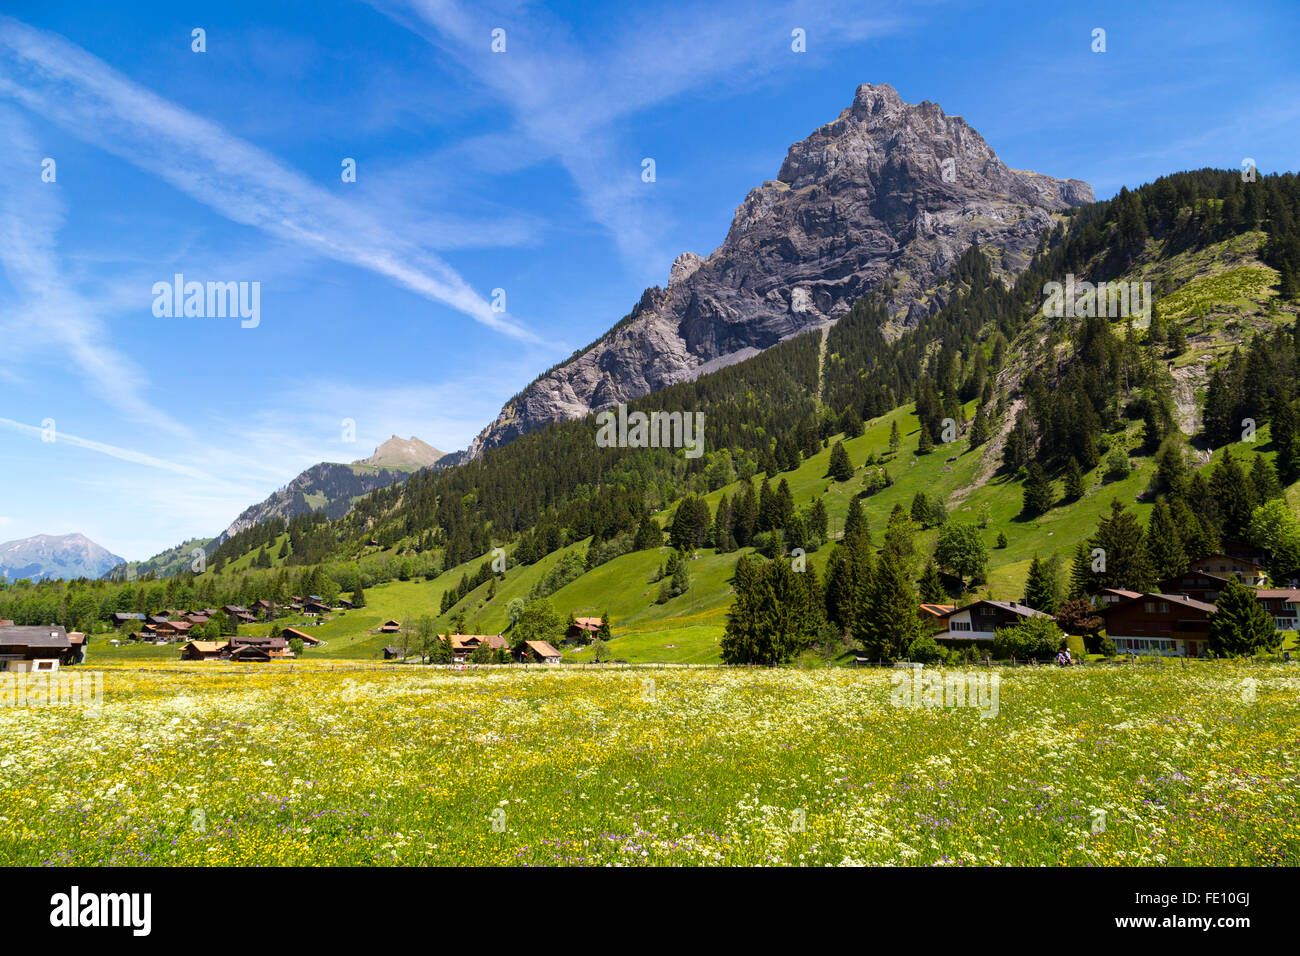 Panorama view of the Alps and Bluemlisalp on the hiking path near Kandersteg on Bernese Oberland in Switzerland - Stock Image